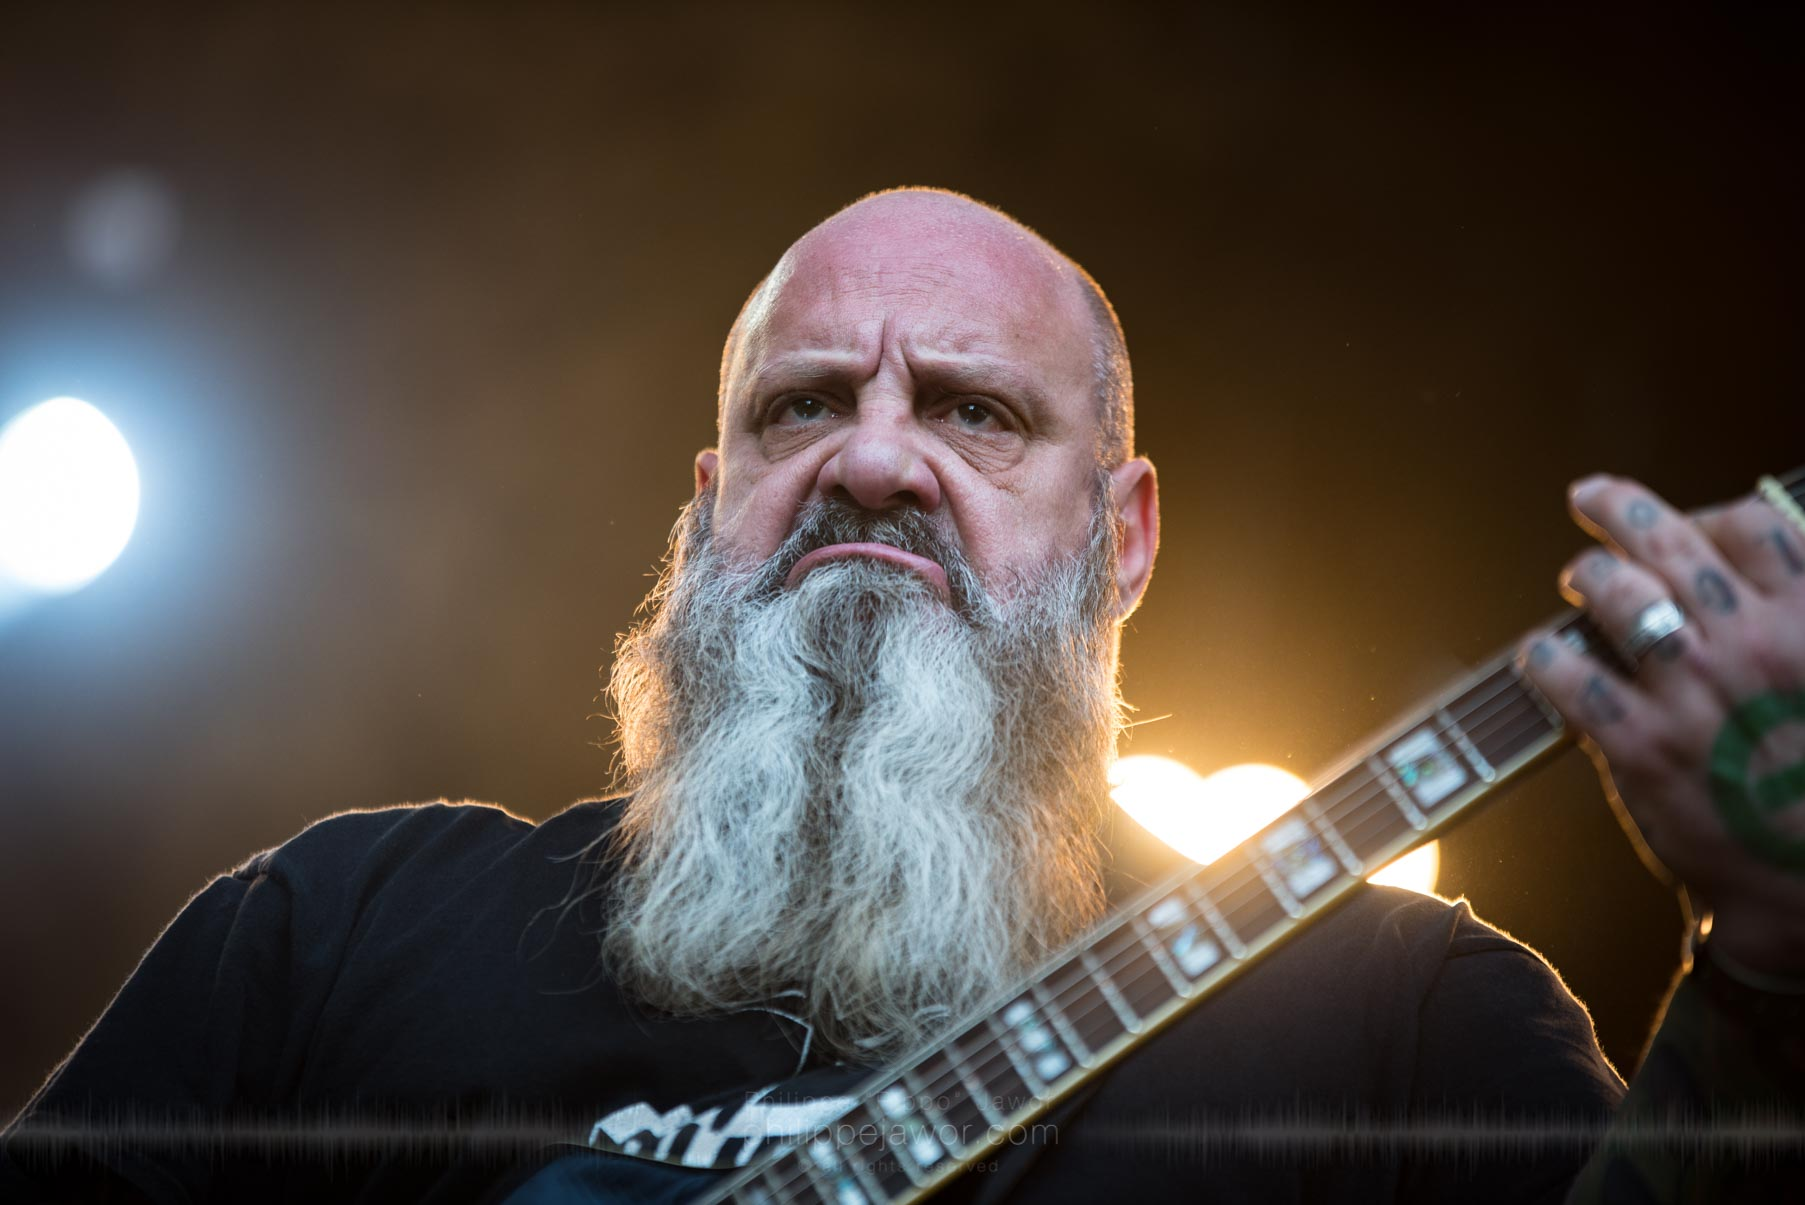 The American sludge metal band Crowbar, live at Sylak Open Air festival, Saint Maurice de Gourdans, France, August 2017.  On assignment for Metal Obs' Magazine All rights reserved.